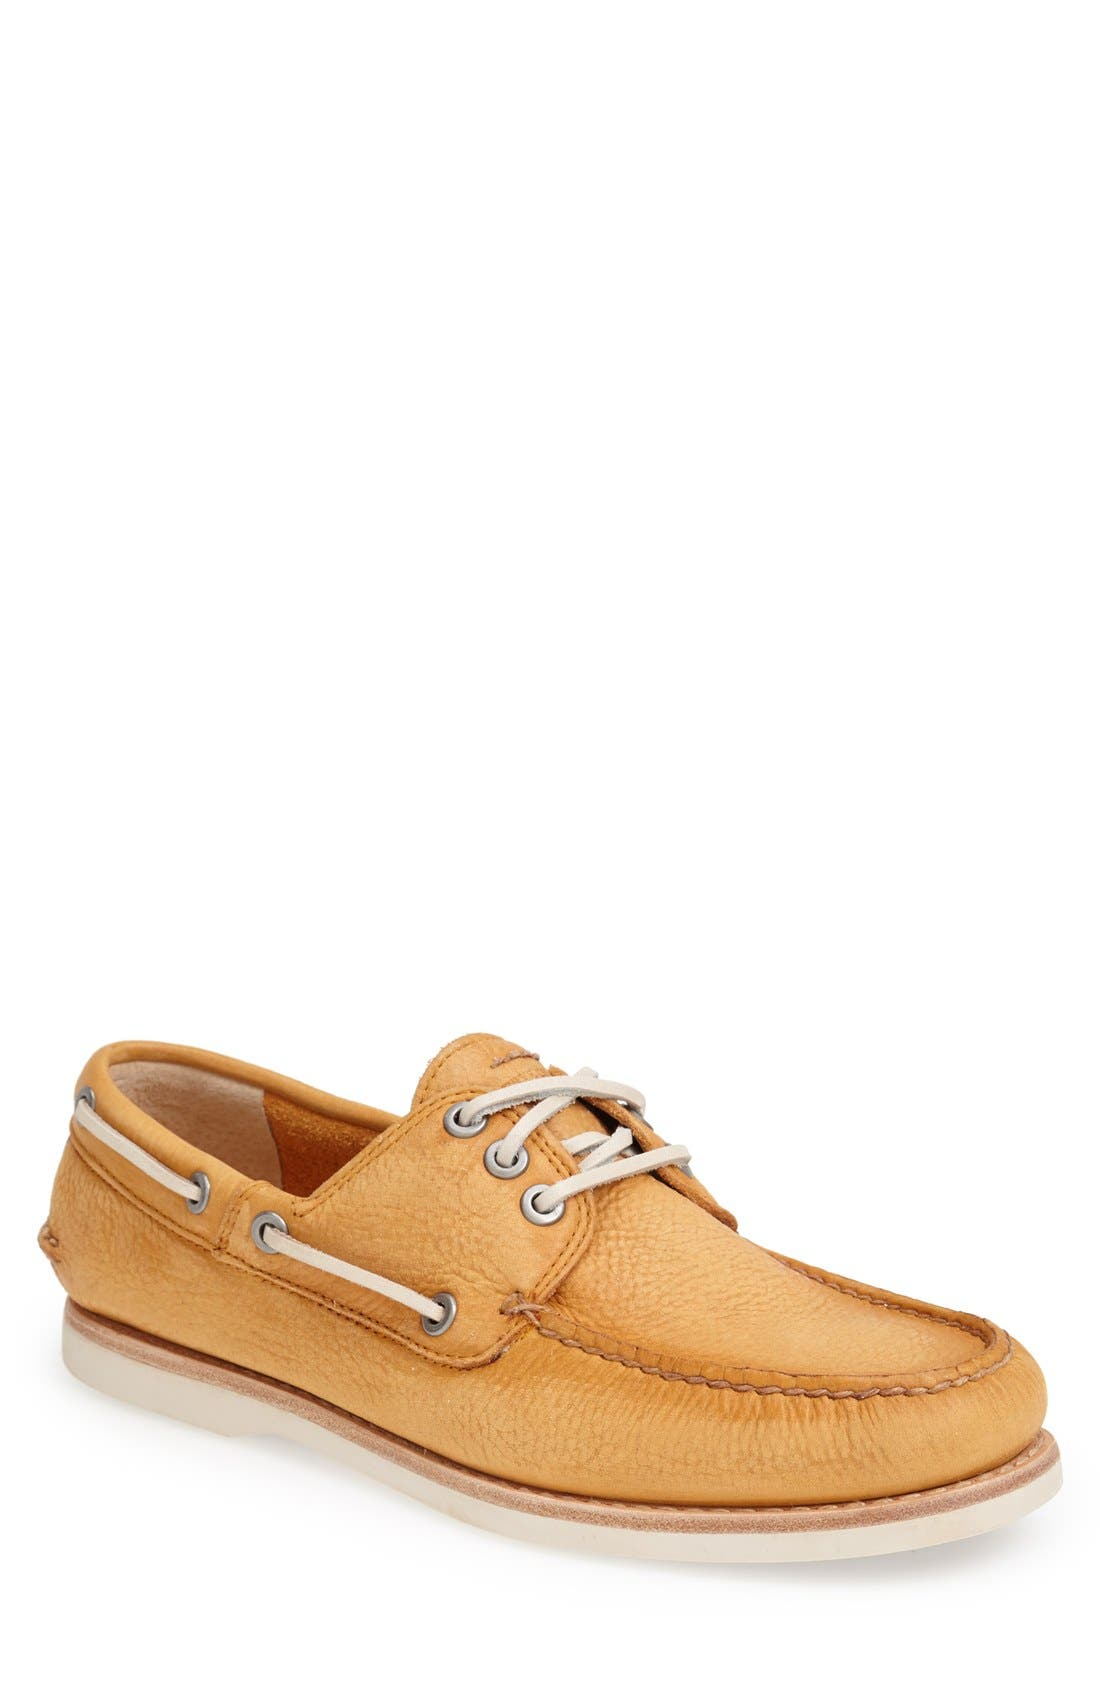 Main Image - Frye 'Sully' Leather Boat Shoe